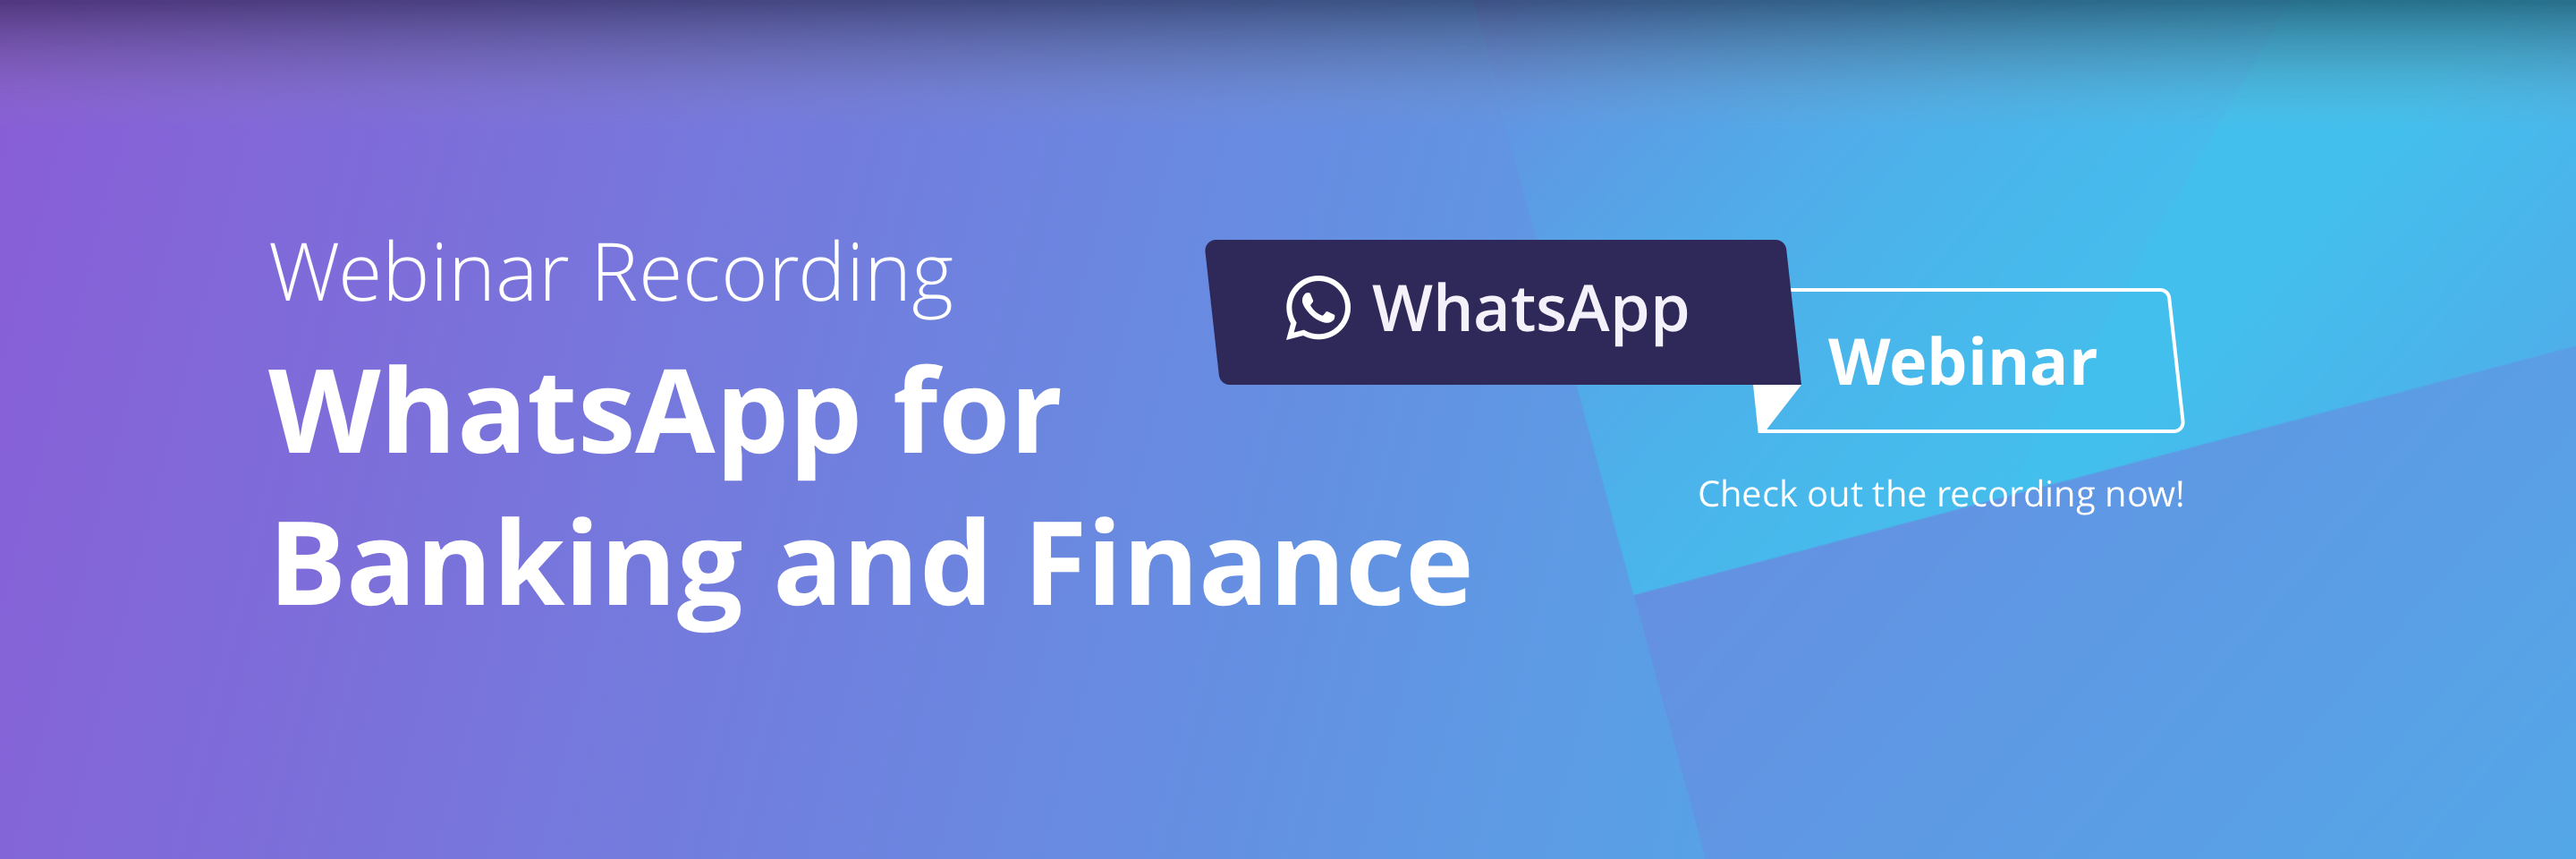 image_teaser_webinars_whatsapp_business_for_banking_and_finance_header_001_2x